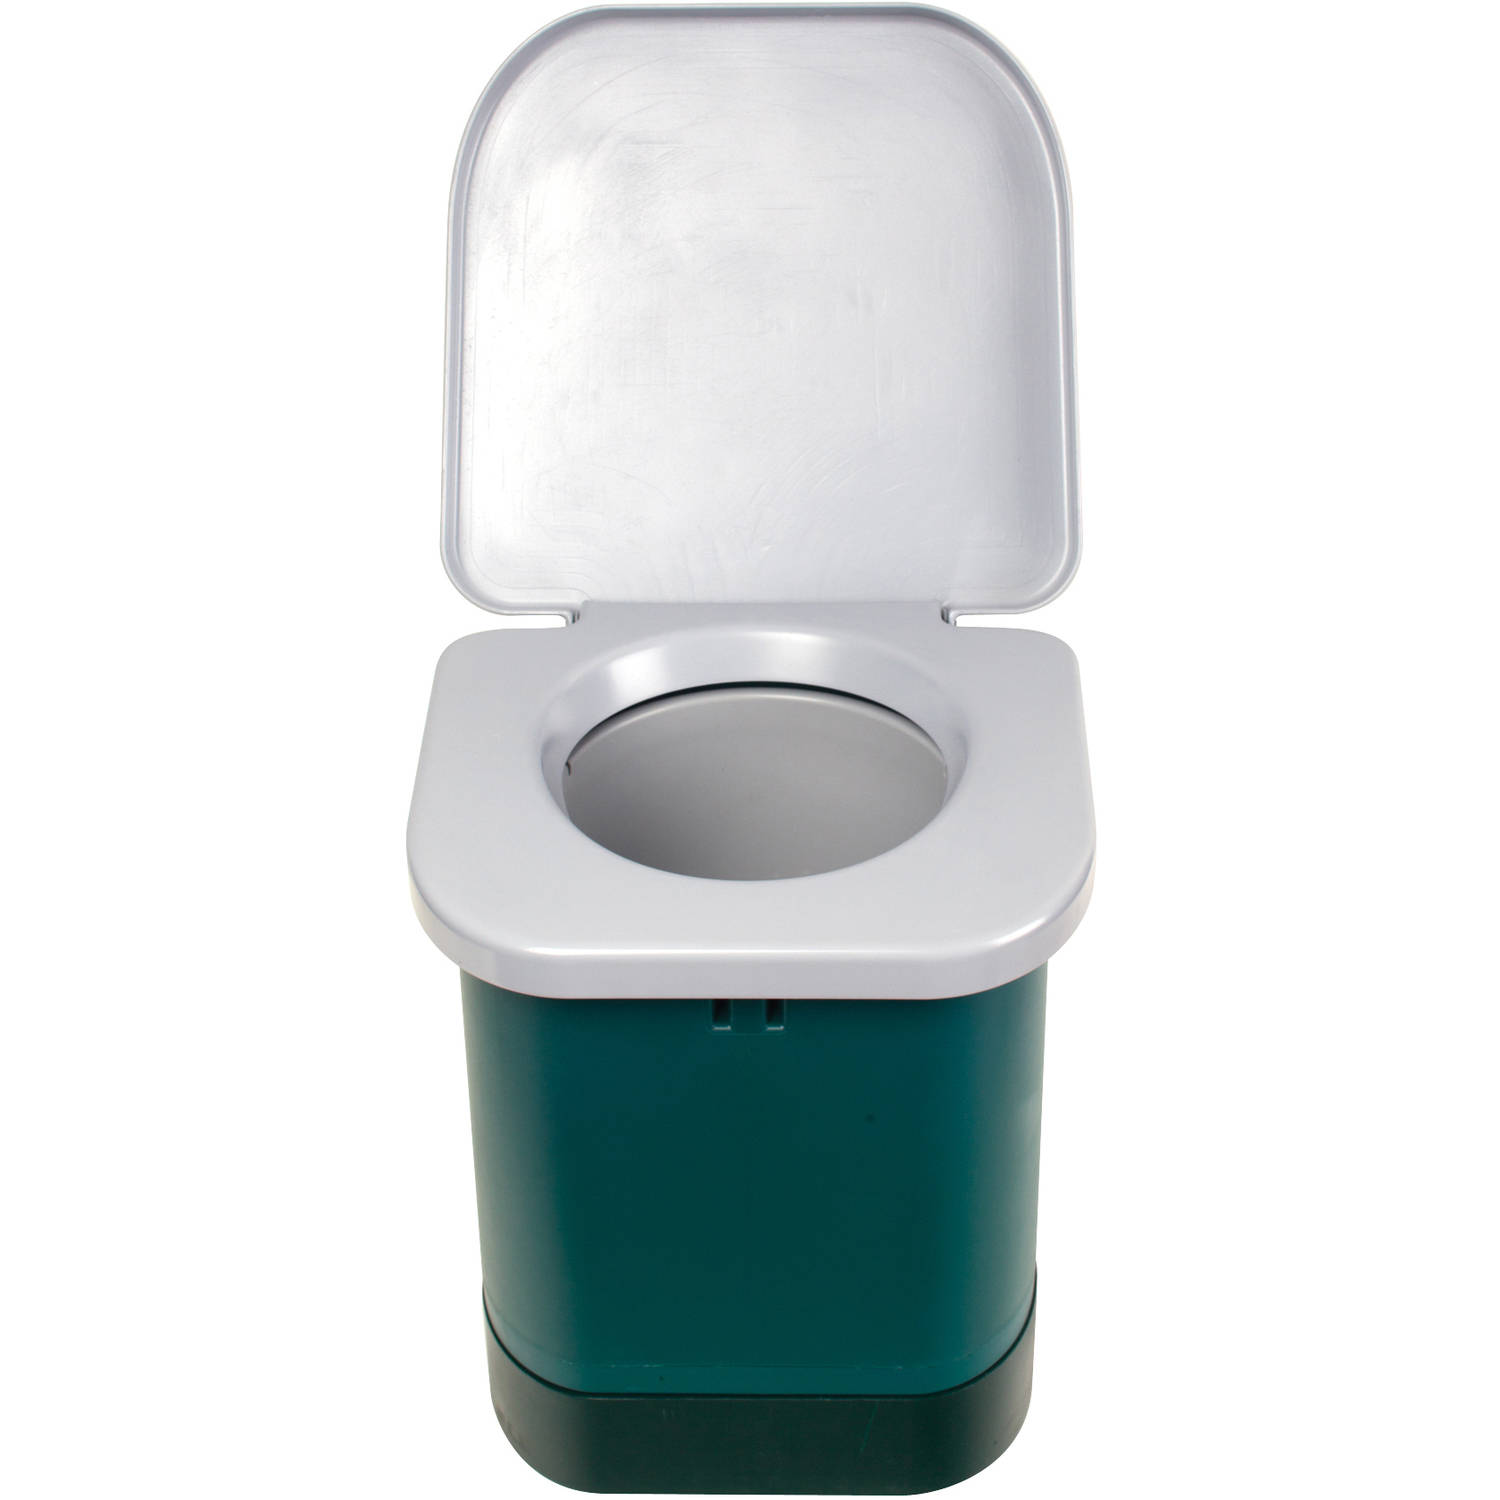 Stansport Easy-Go Portable Toilet by Generic